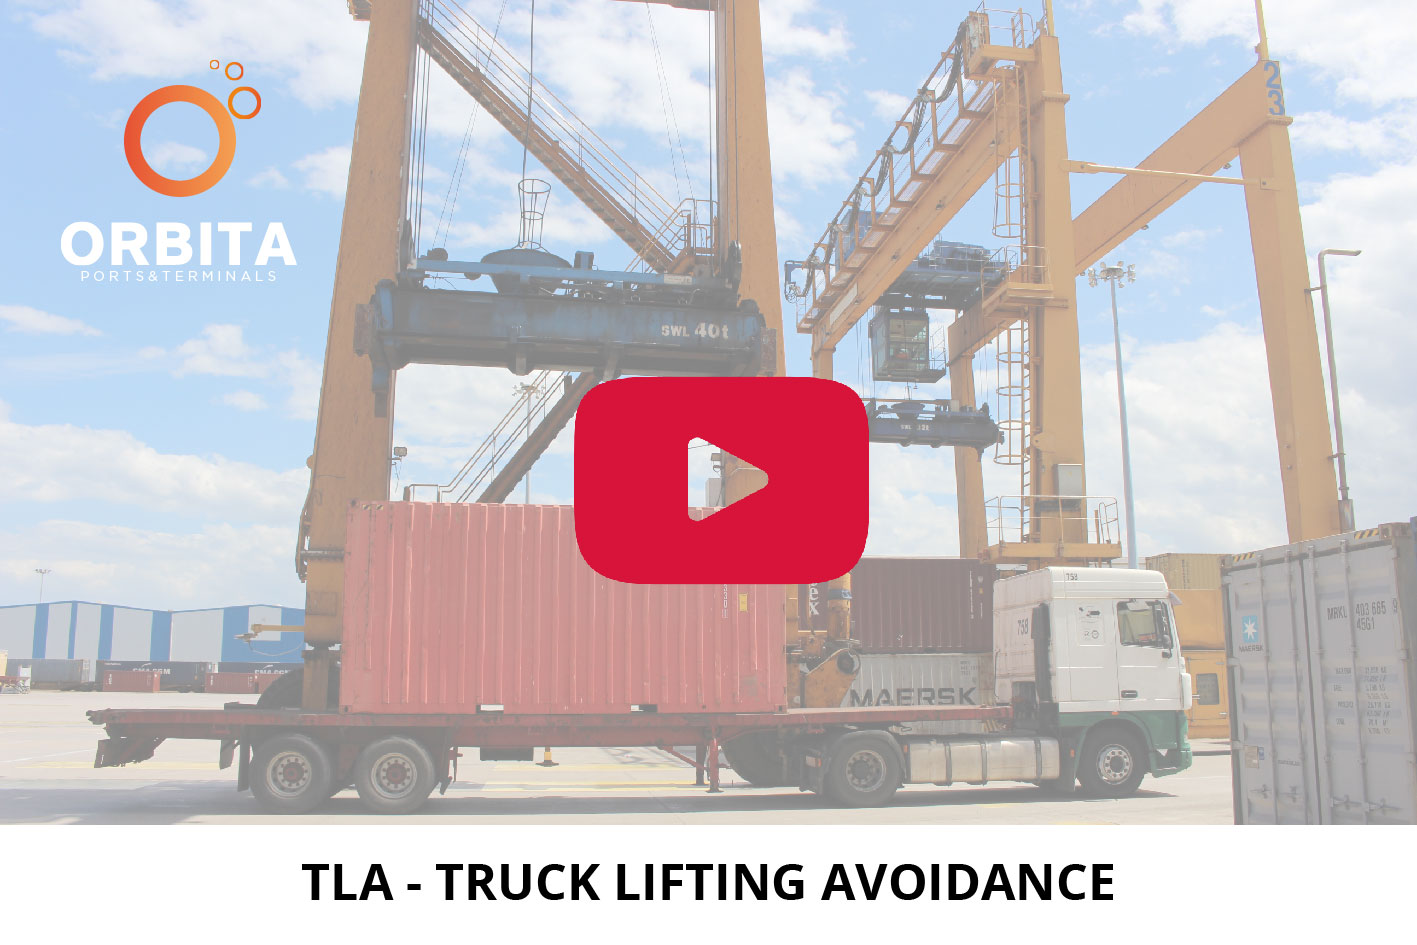 TLA- Truck Lifting Avoidance